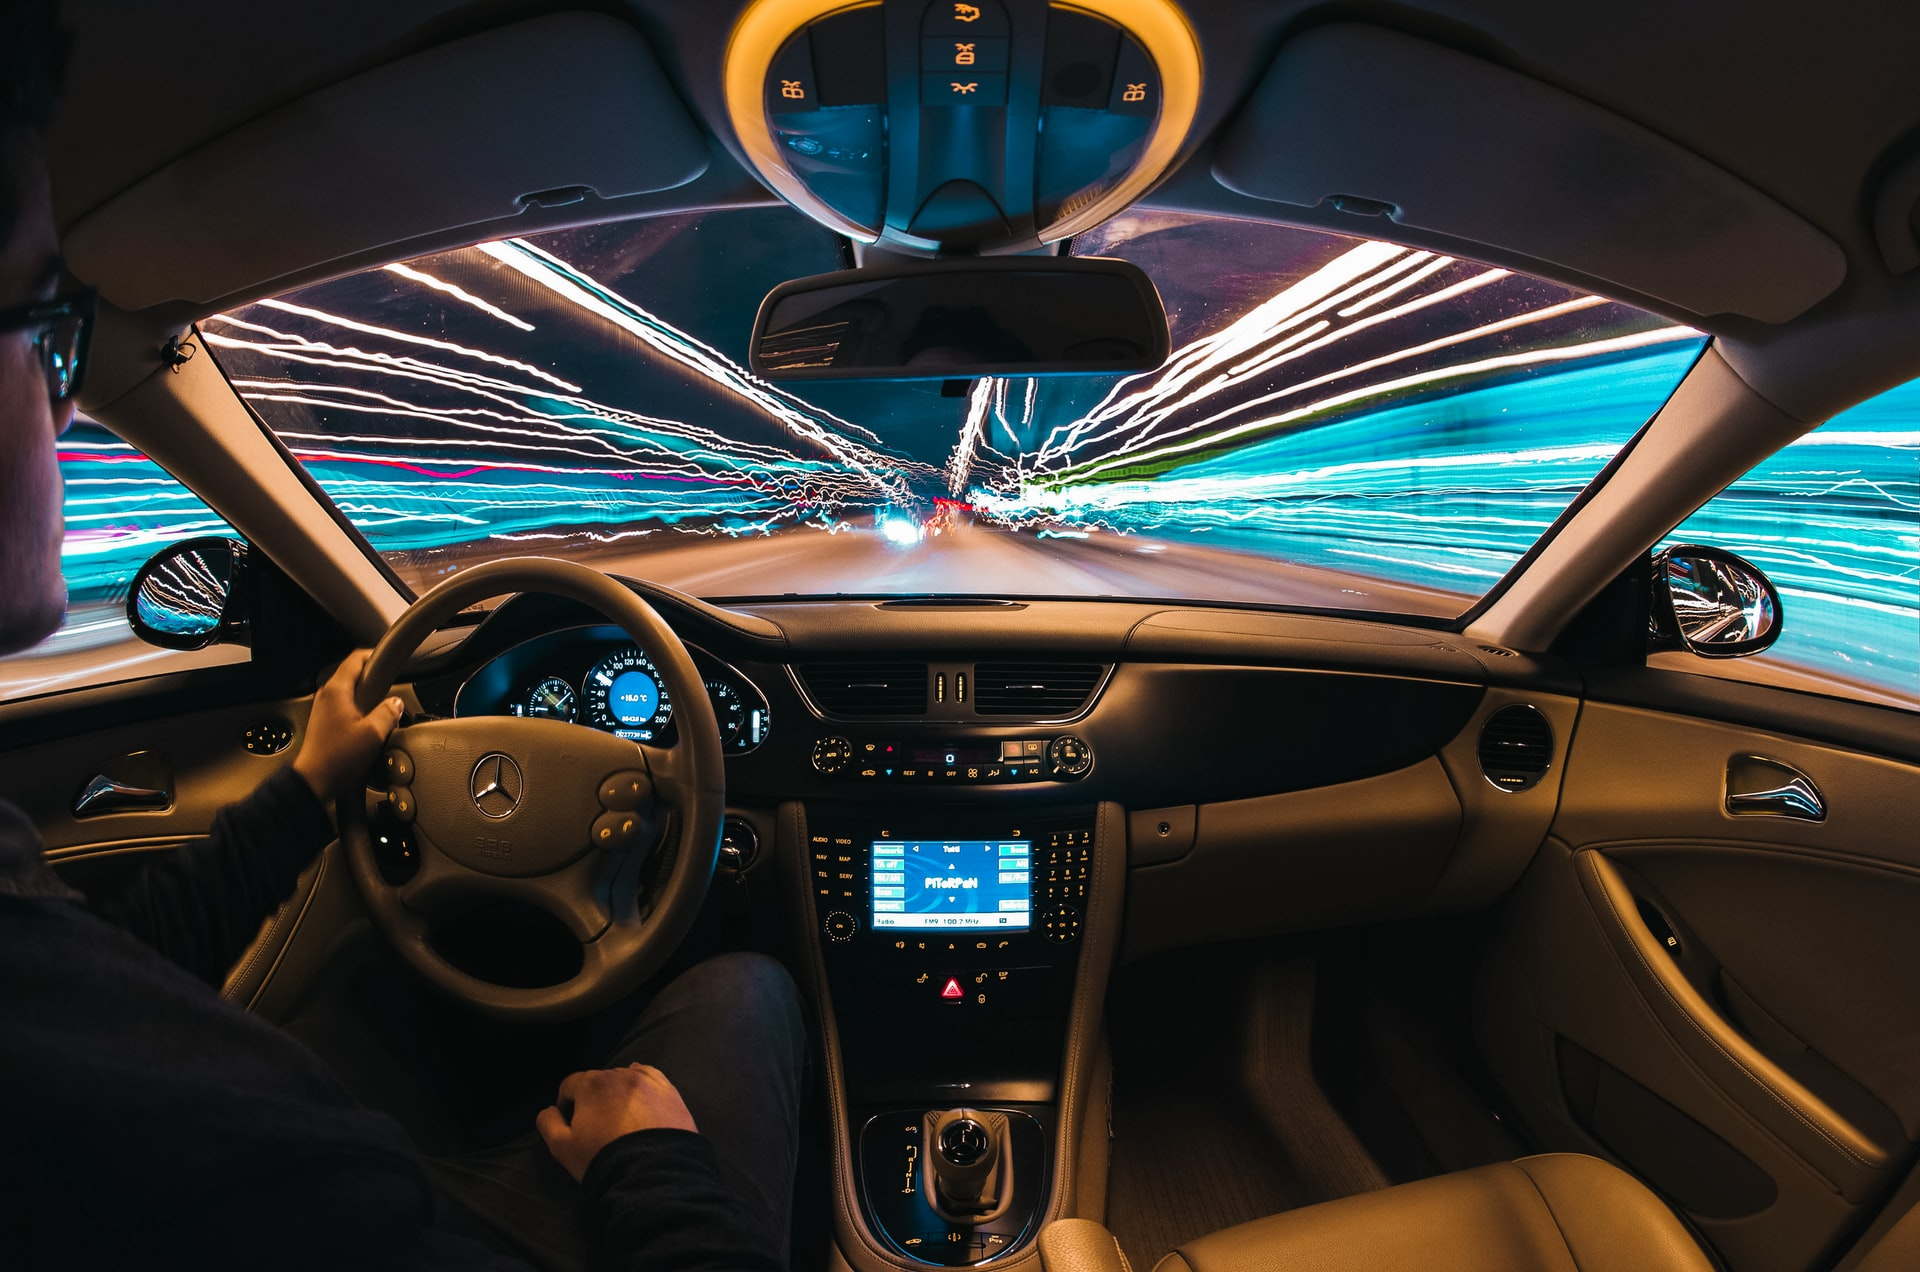 This image is taken from inside a sports car as a lens pictures the lights going past the vehicle.